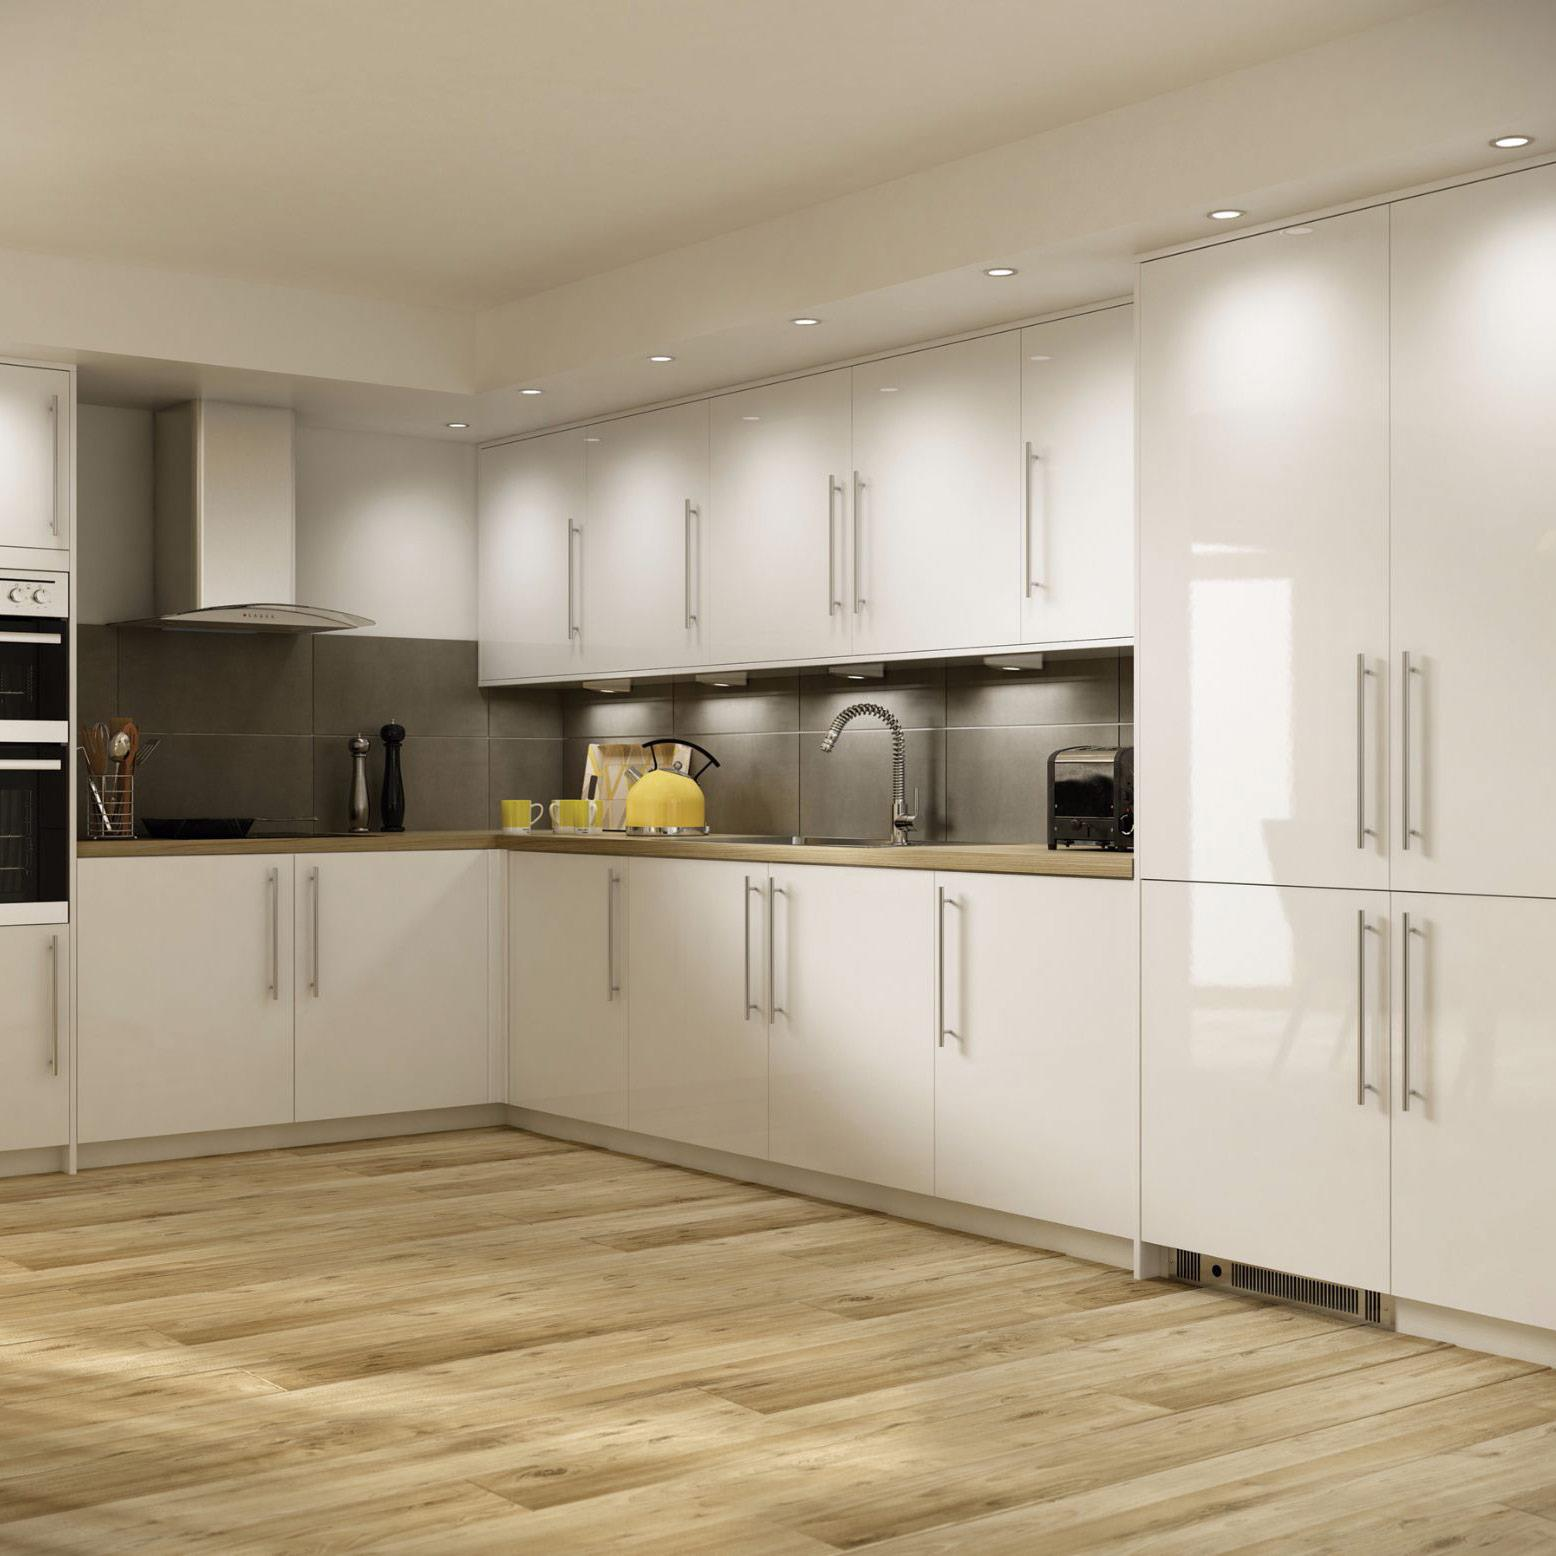 Smith Smith Kitchens: Smith's SS80 Kitchen Plinth Heater Central Heating